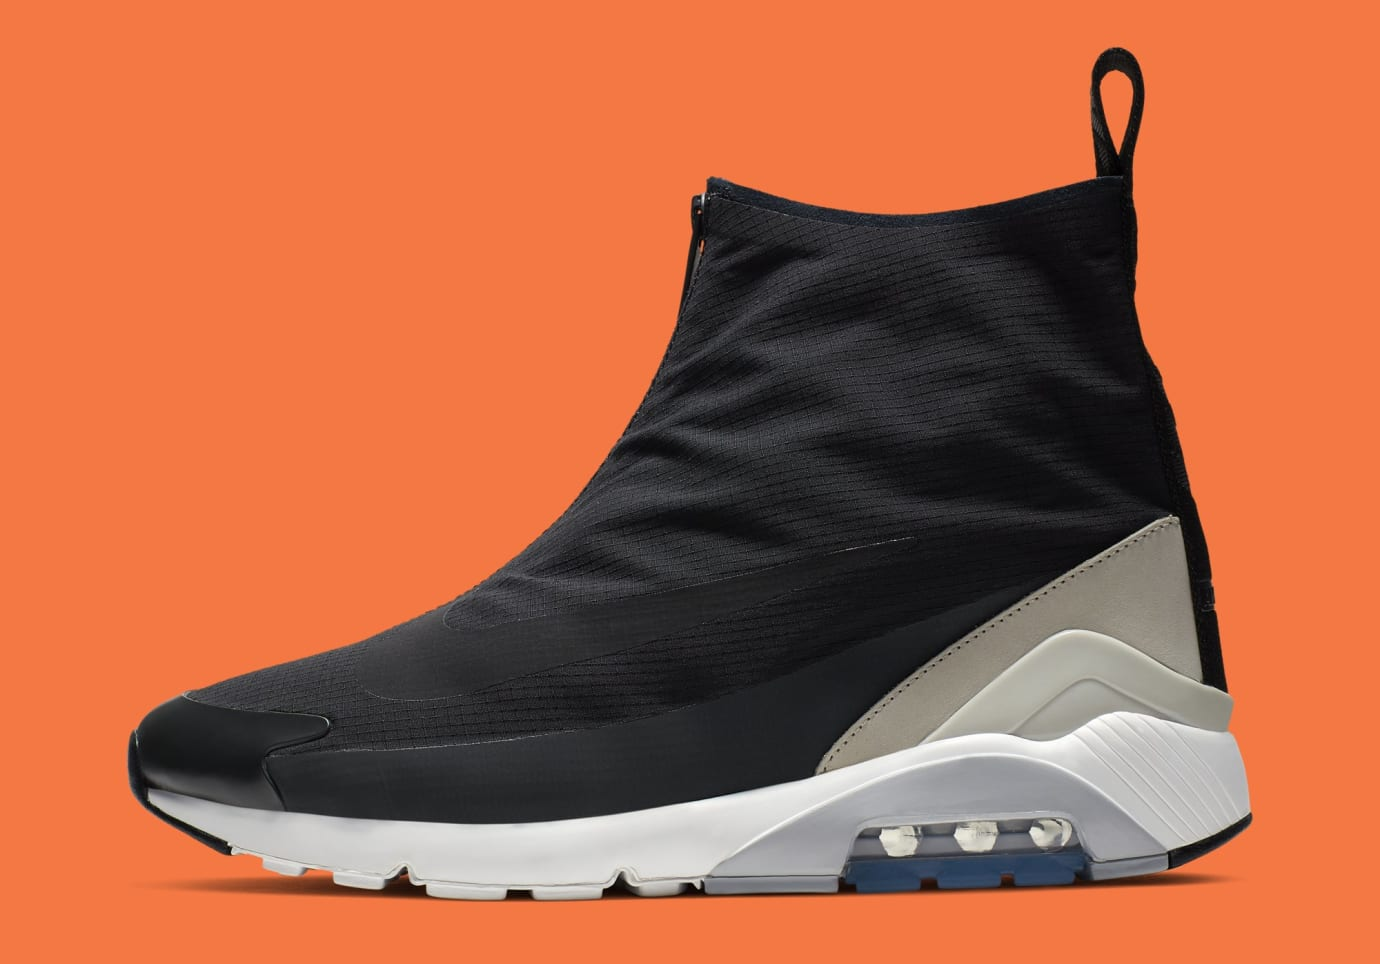 Ambush x Nike Air Max 180 Hi 'Black/Black-Pale Grey' BV0145-001 (Lateral)